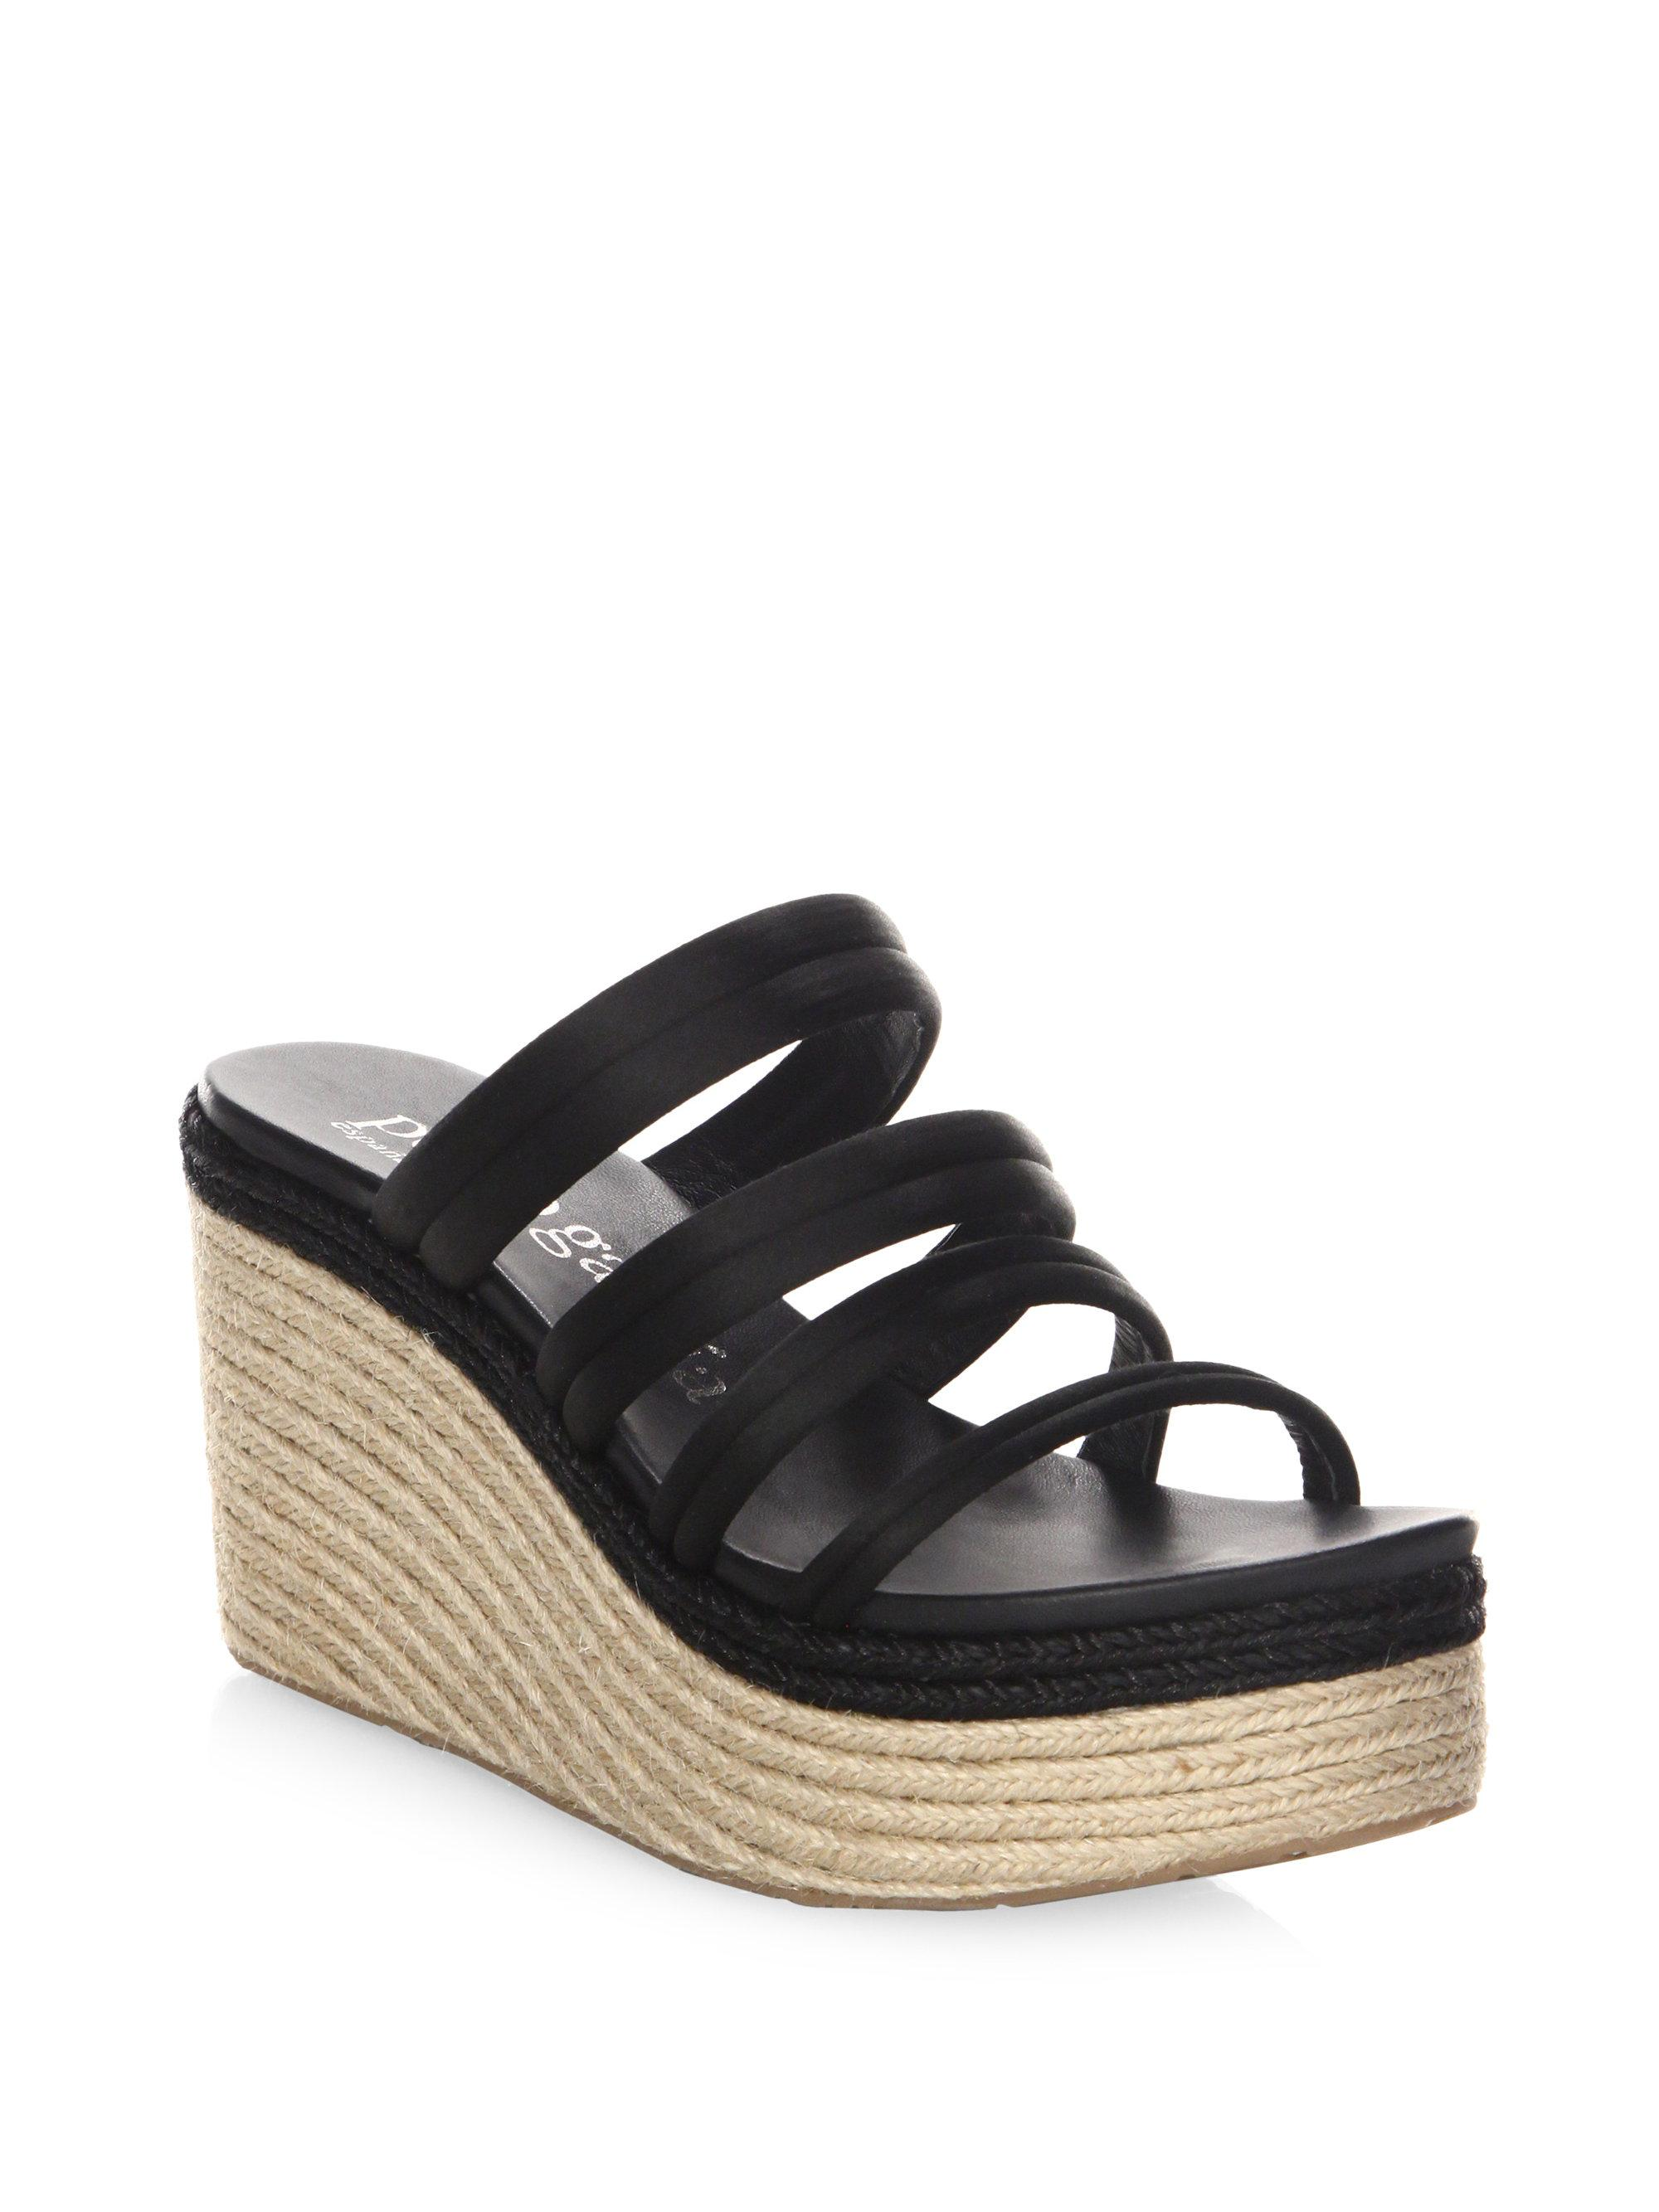 7122a3eadea Pedro Garcia Dante Wedge Sandals in Black - Lyst